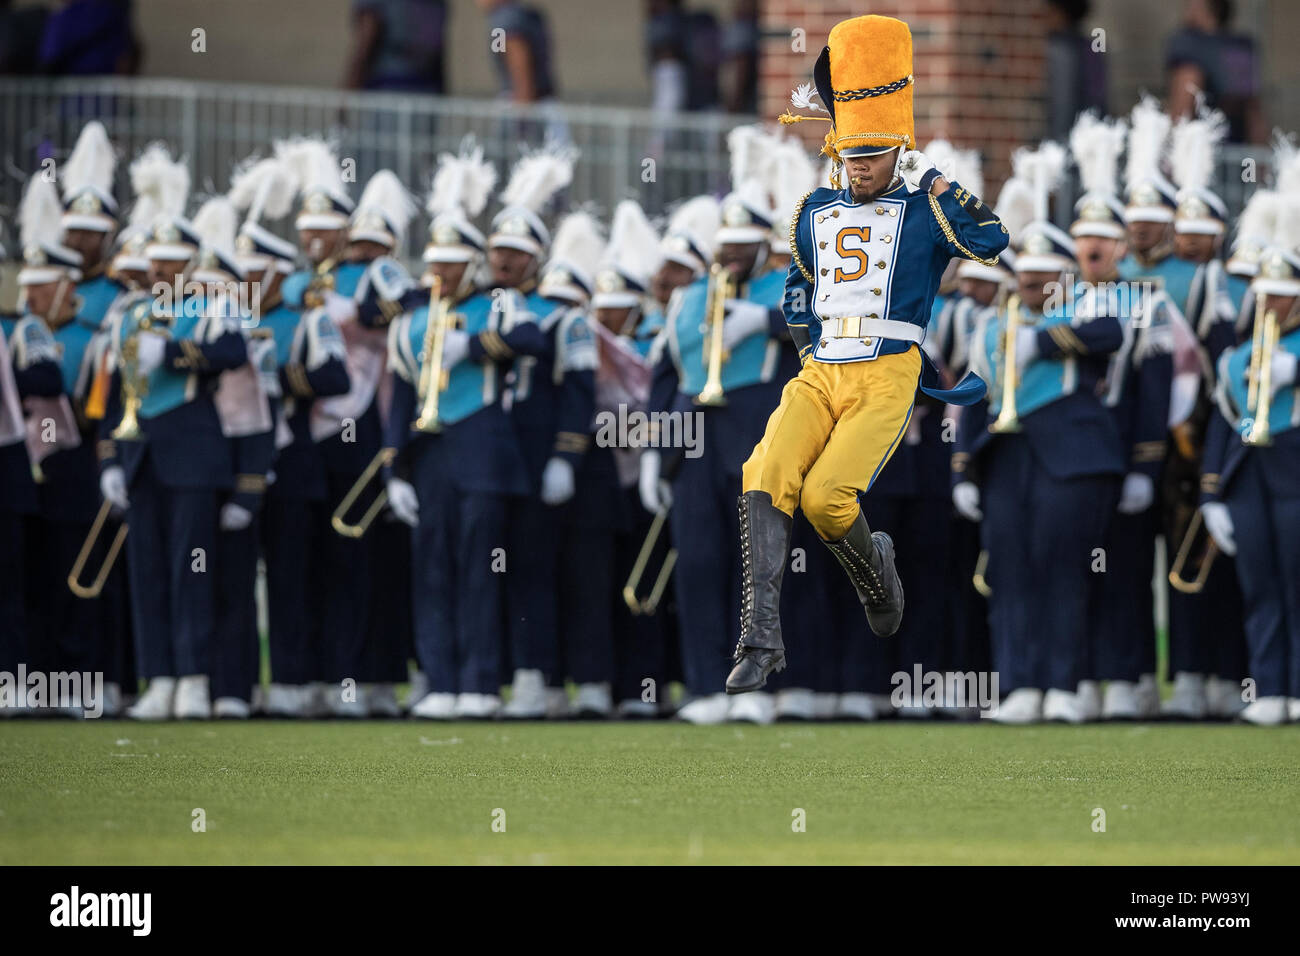 A Southern University Jaguars Drum Major Takes The Field During The  Halftime Show In The NCAA Football Game Between The Southern University  Jaguars And The ...